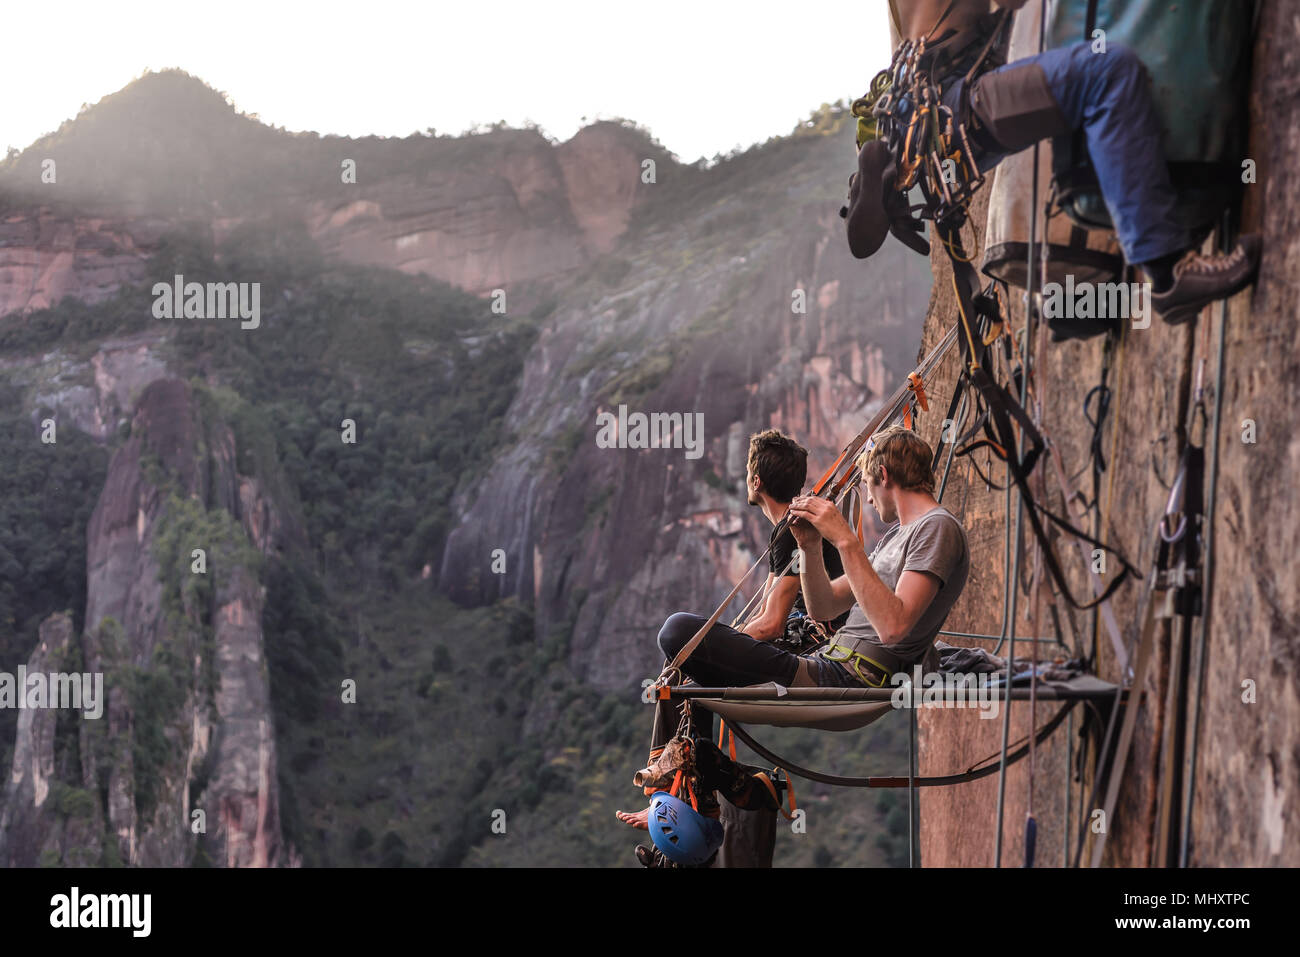 Two rock climbers sitting on portaledge, looking at view, Liming, Yunnan Province, China - Stock Image